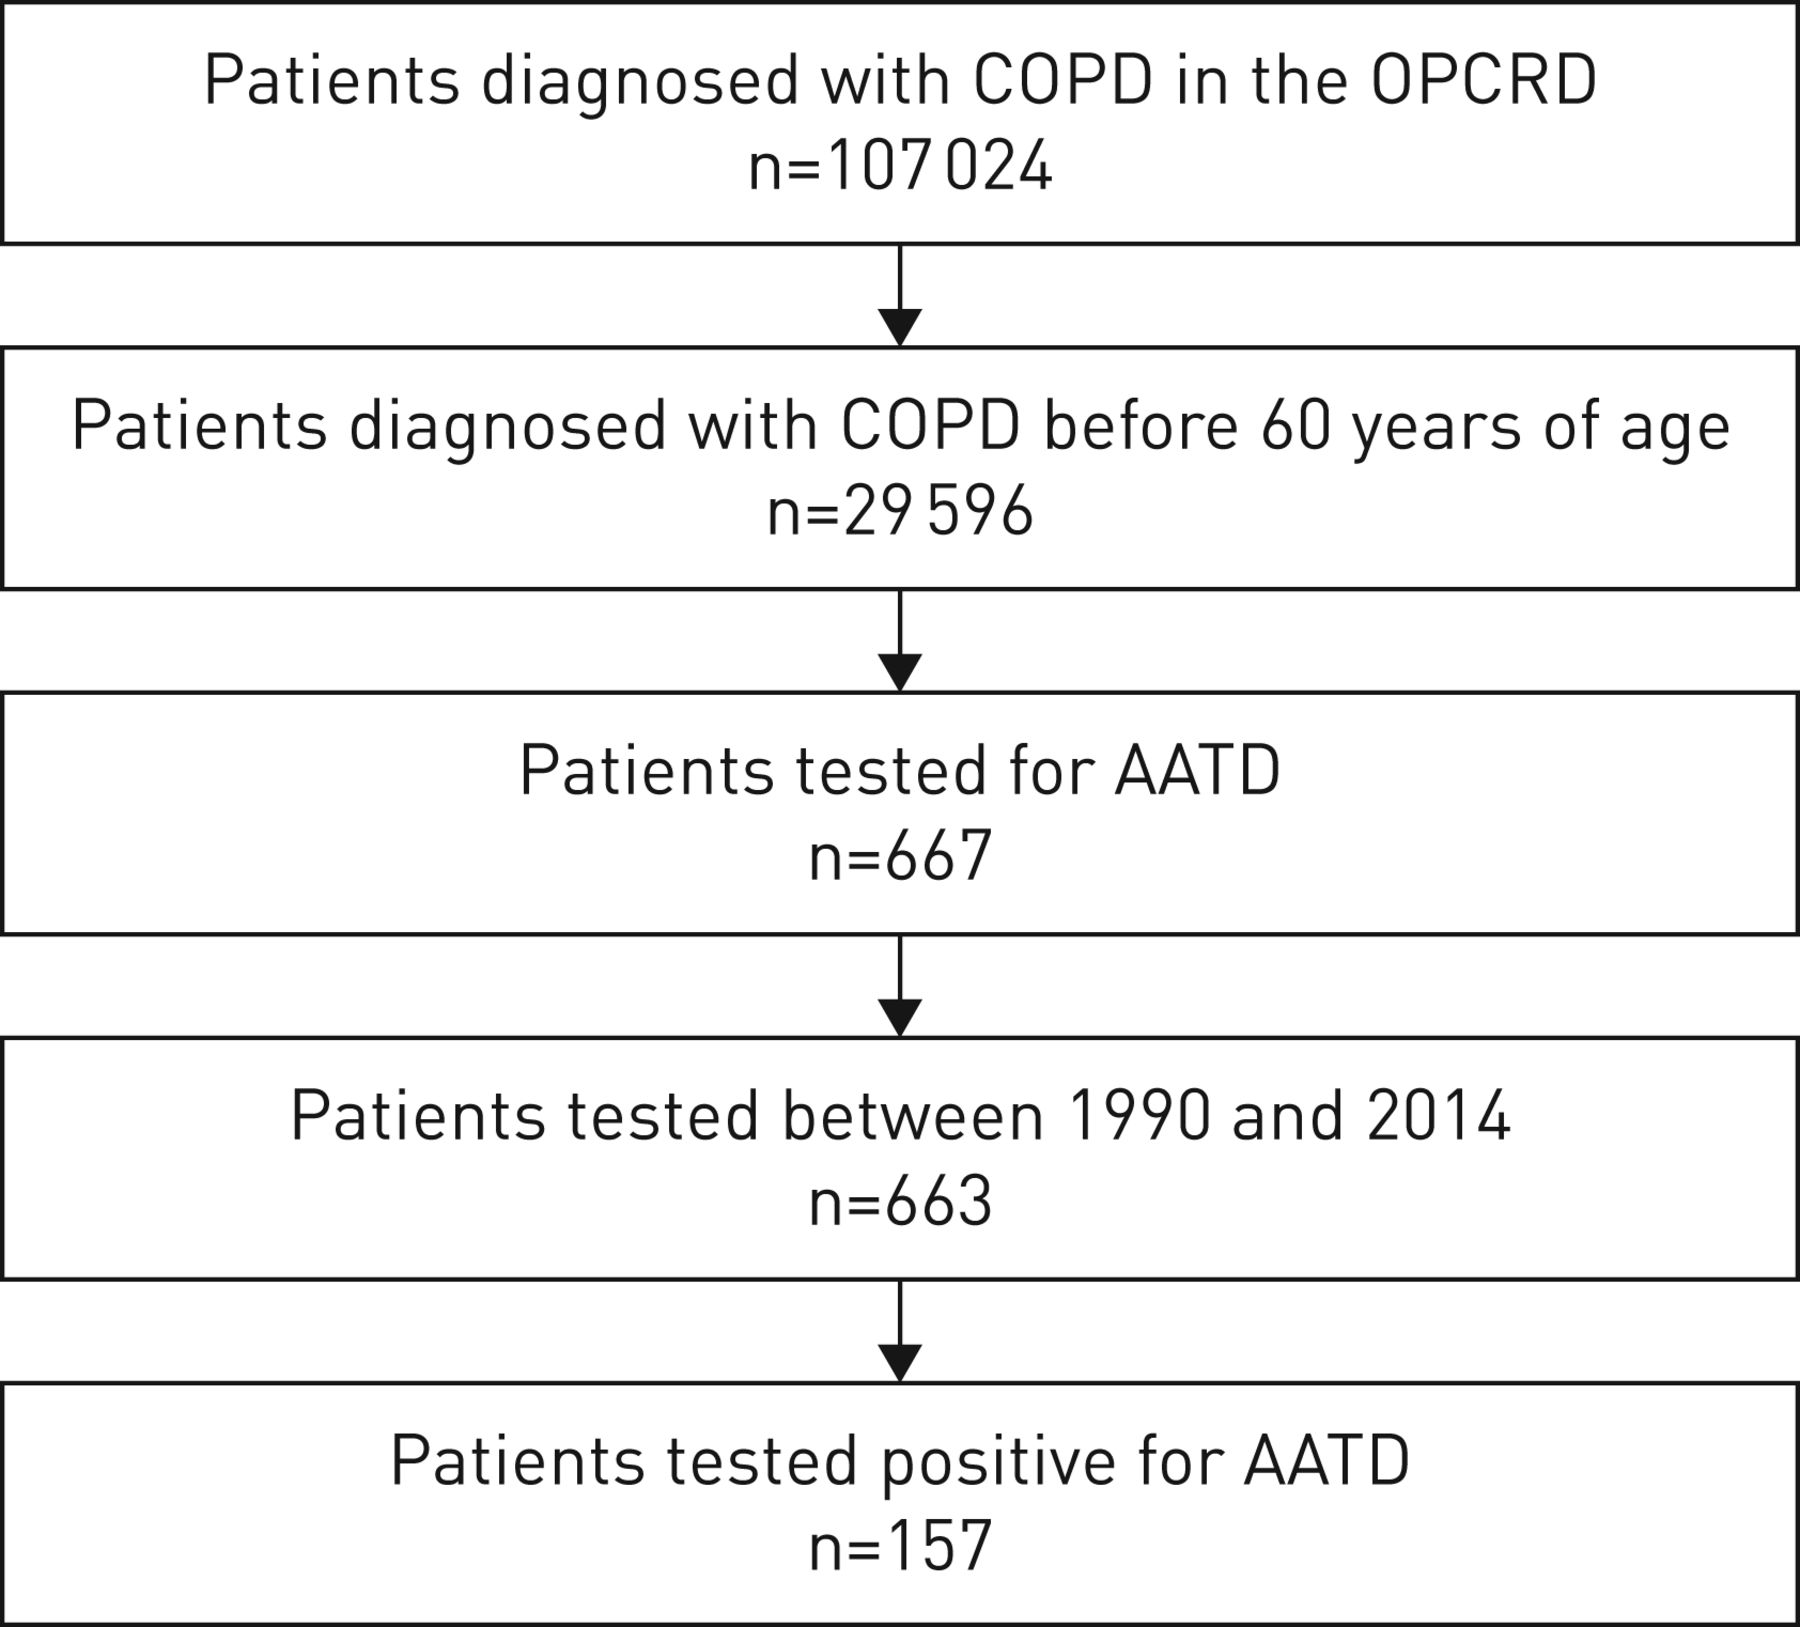 Trends of testing for and diagnosis of α1-antitrypsin deficiency in